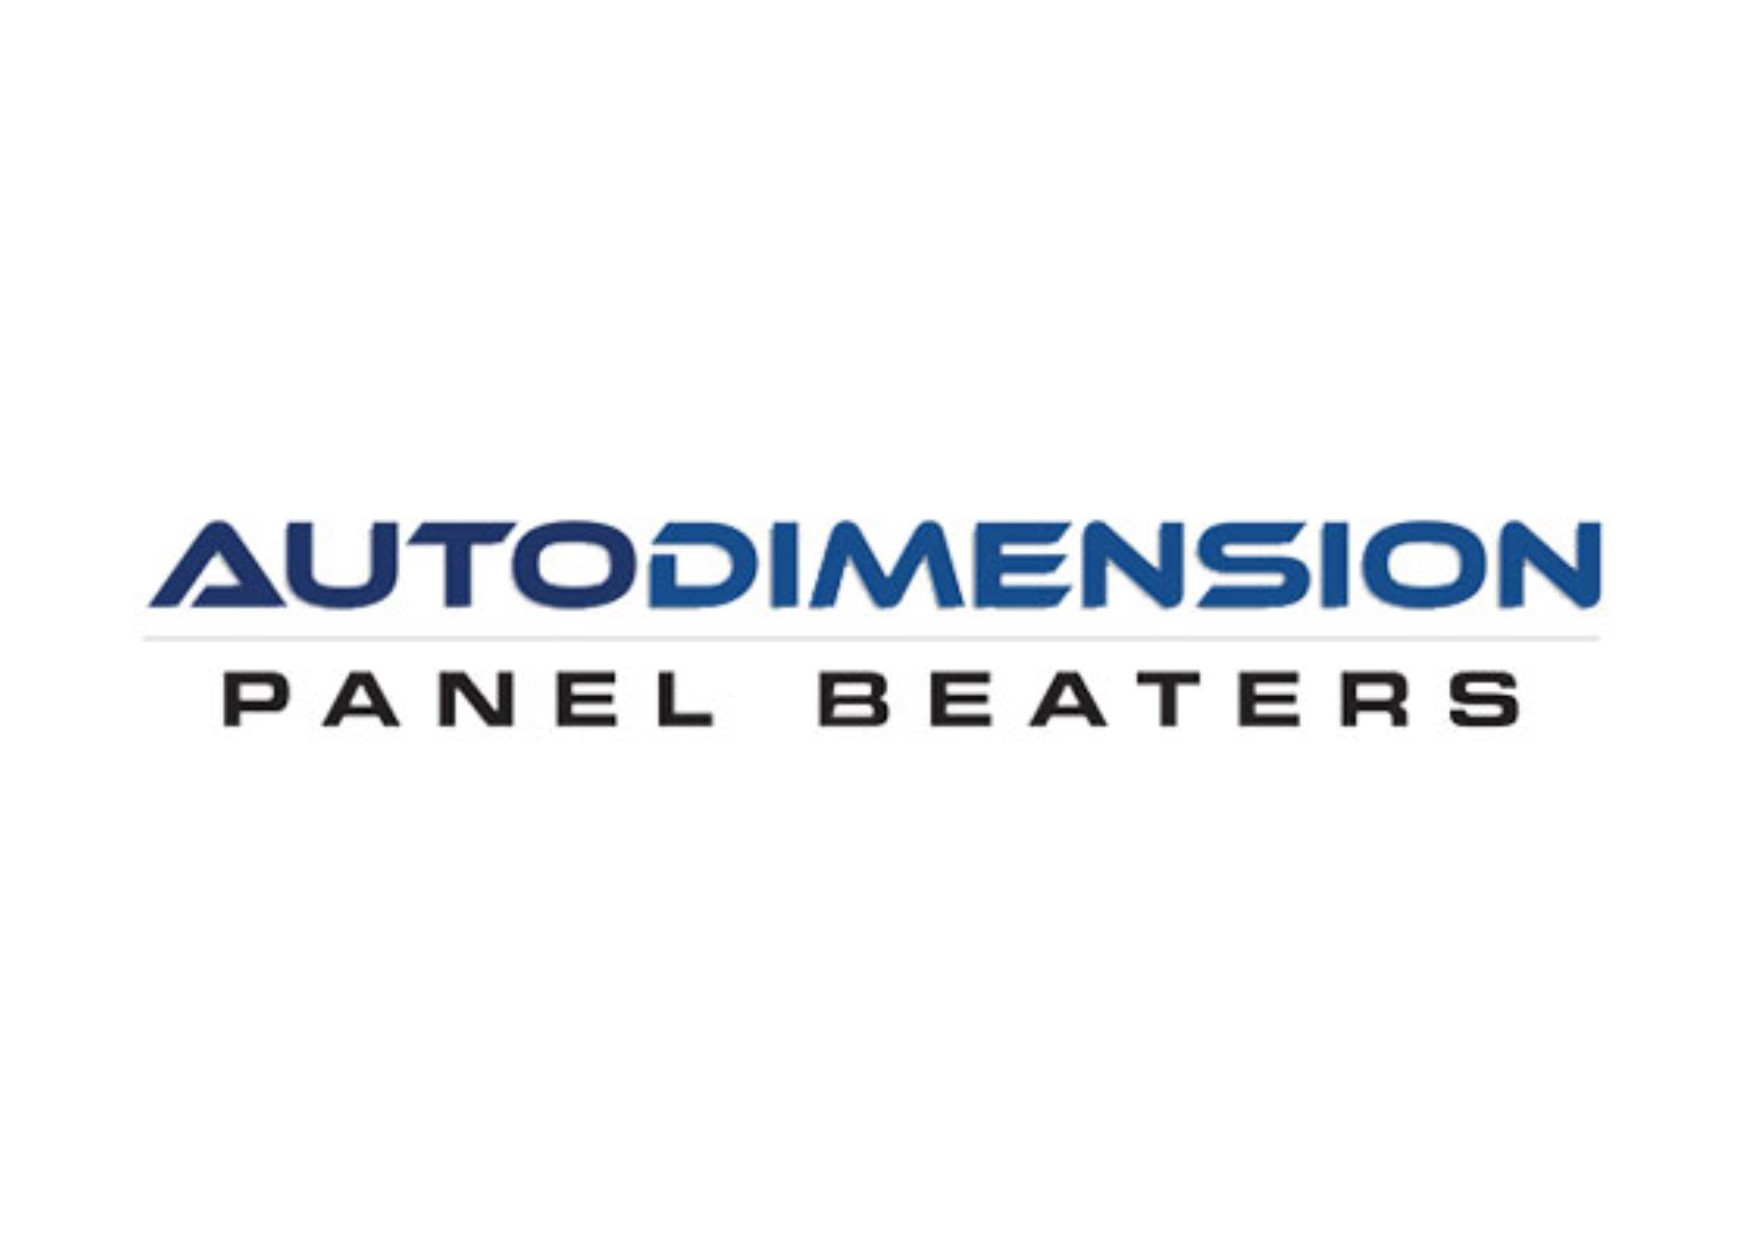 Logo of Auto Dimension Panelbeaters